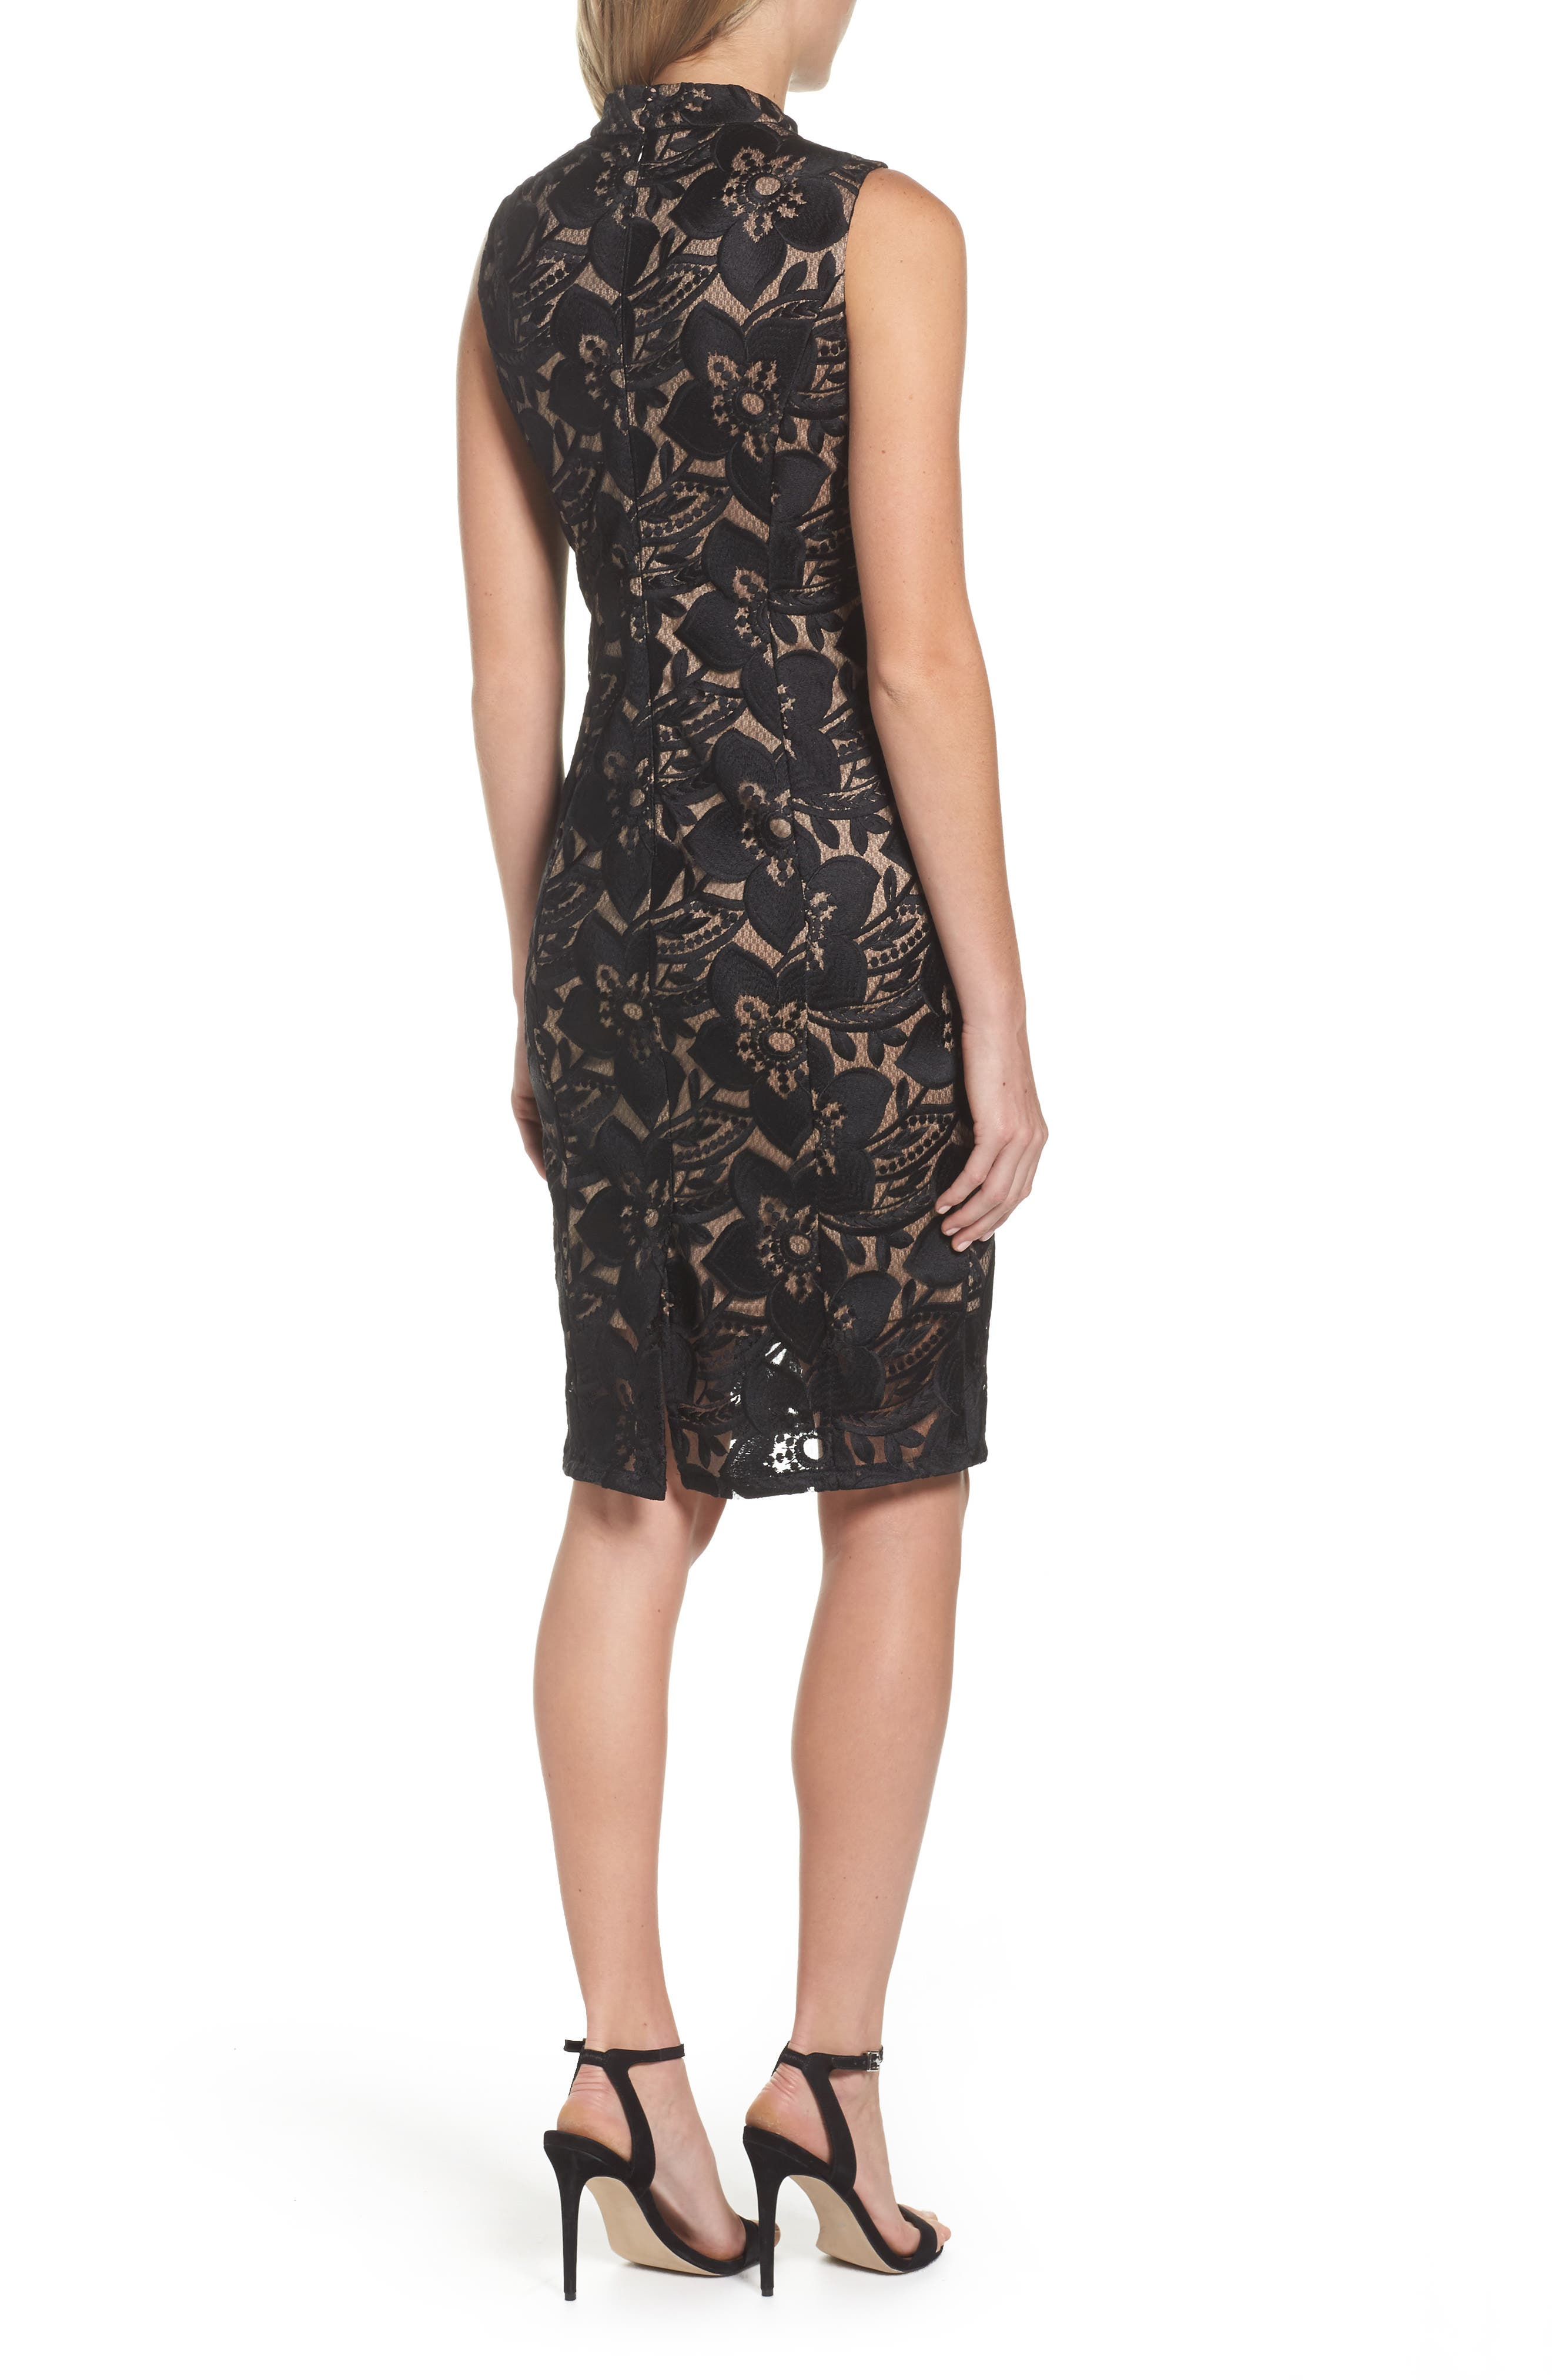 ADRIANNA PAPELL,                             Lace Sheath Dress,                             Alternate thumbnail 2, color,                             002